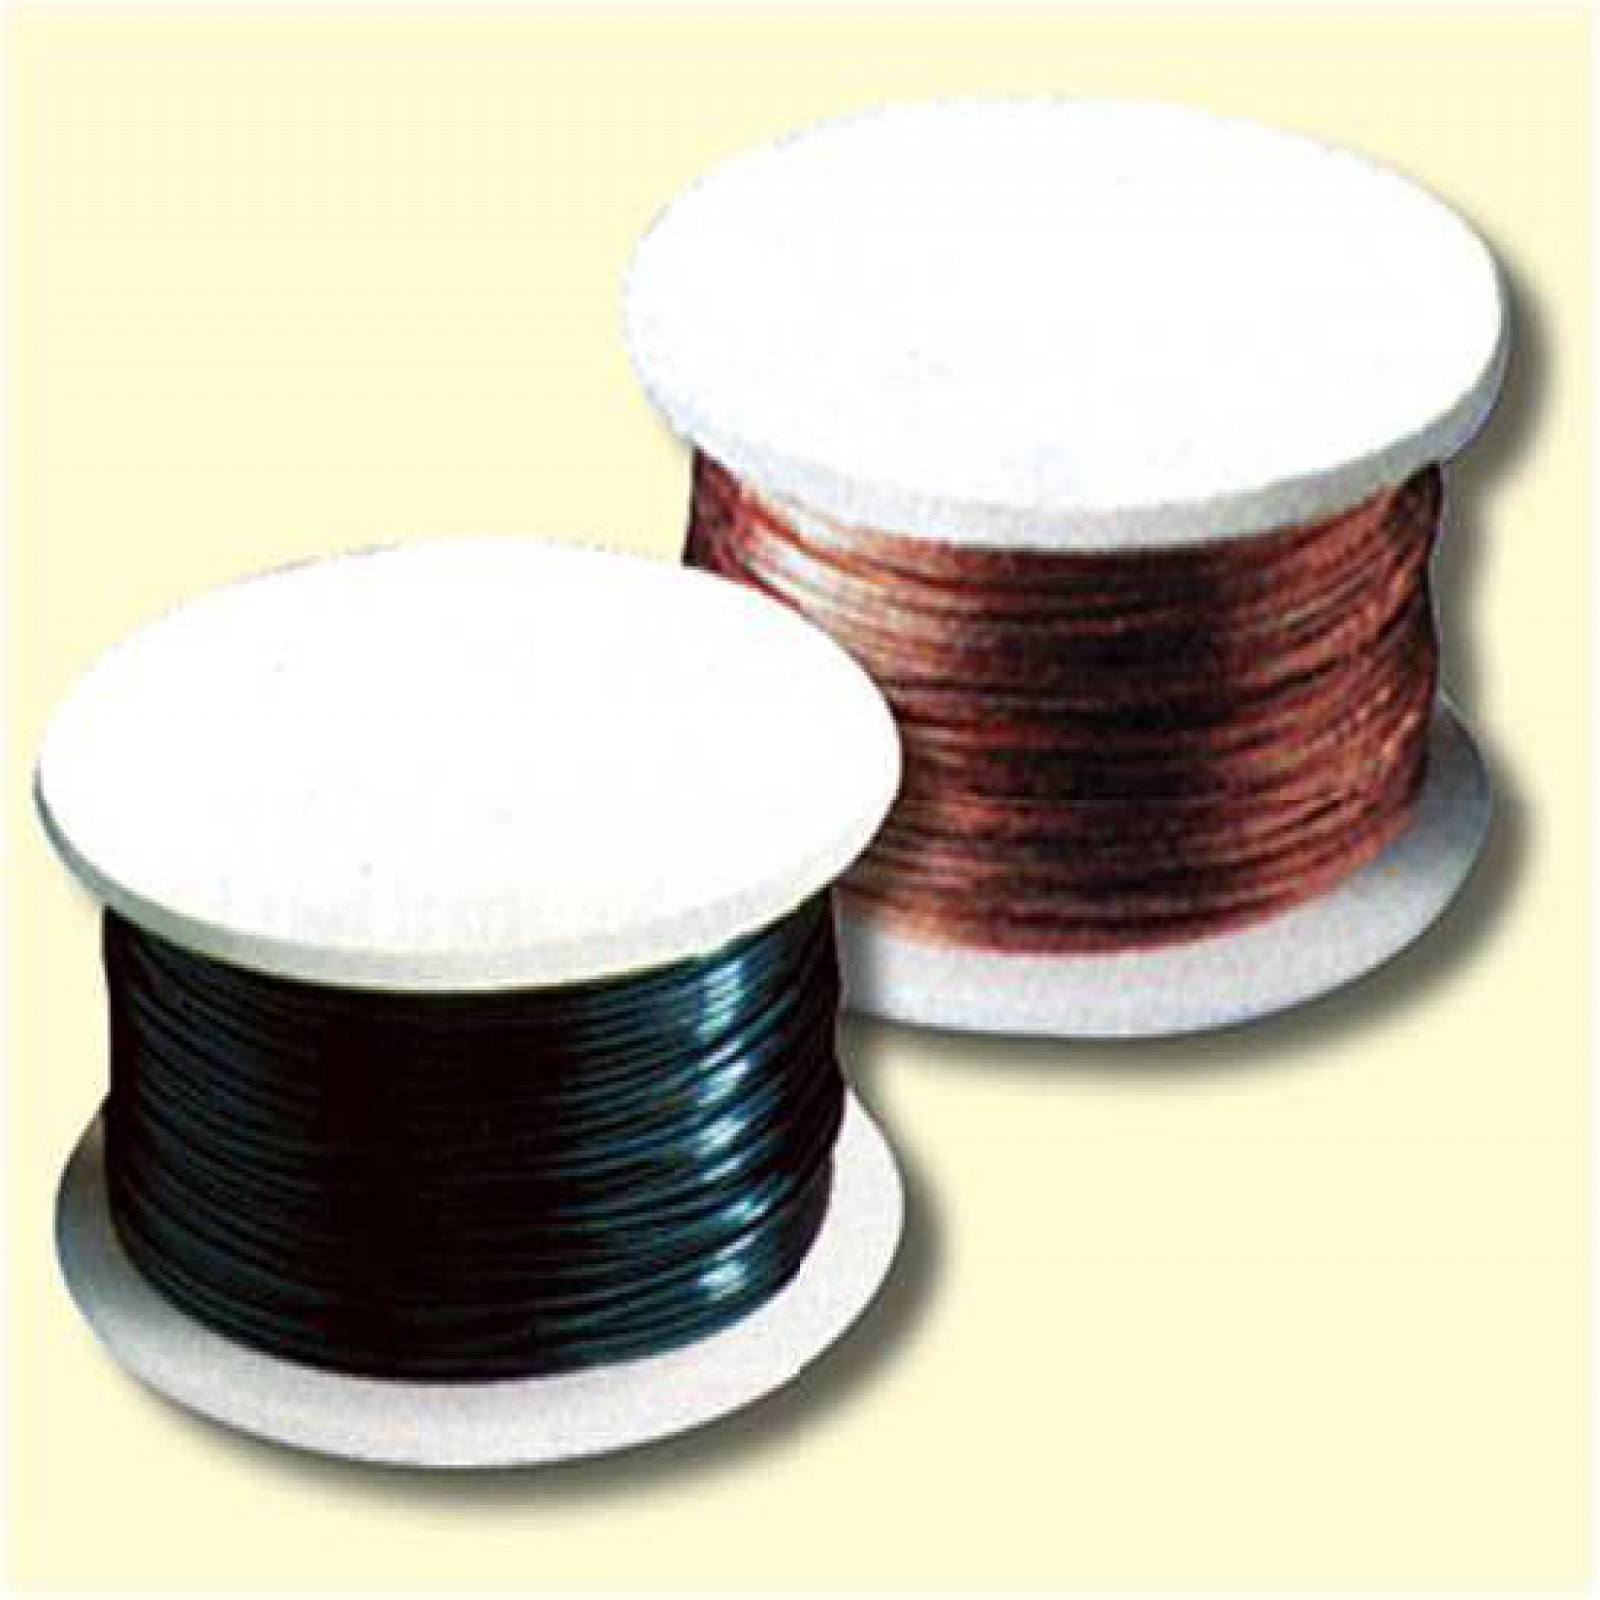 DARK ANNEALED STEEL WIRE 1mm 19 Gauge x  50 FT.